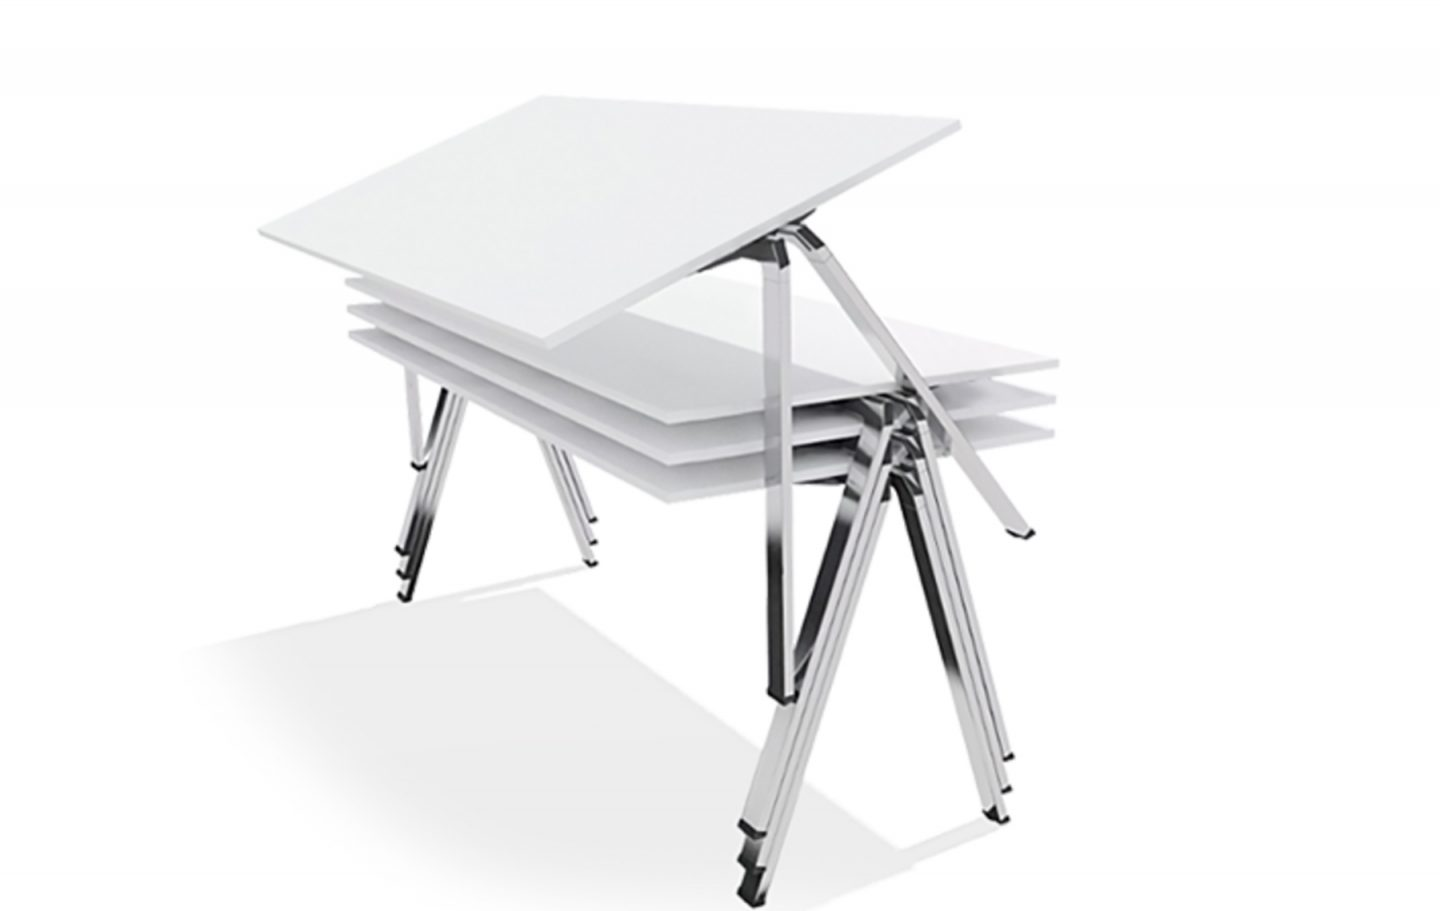 iGNANT-A'Design-Wiesner-Hager-Yuno-Table-Systems-002